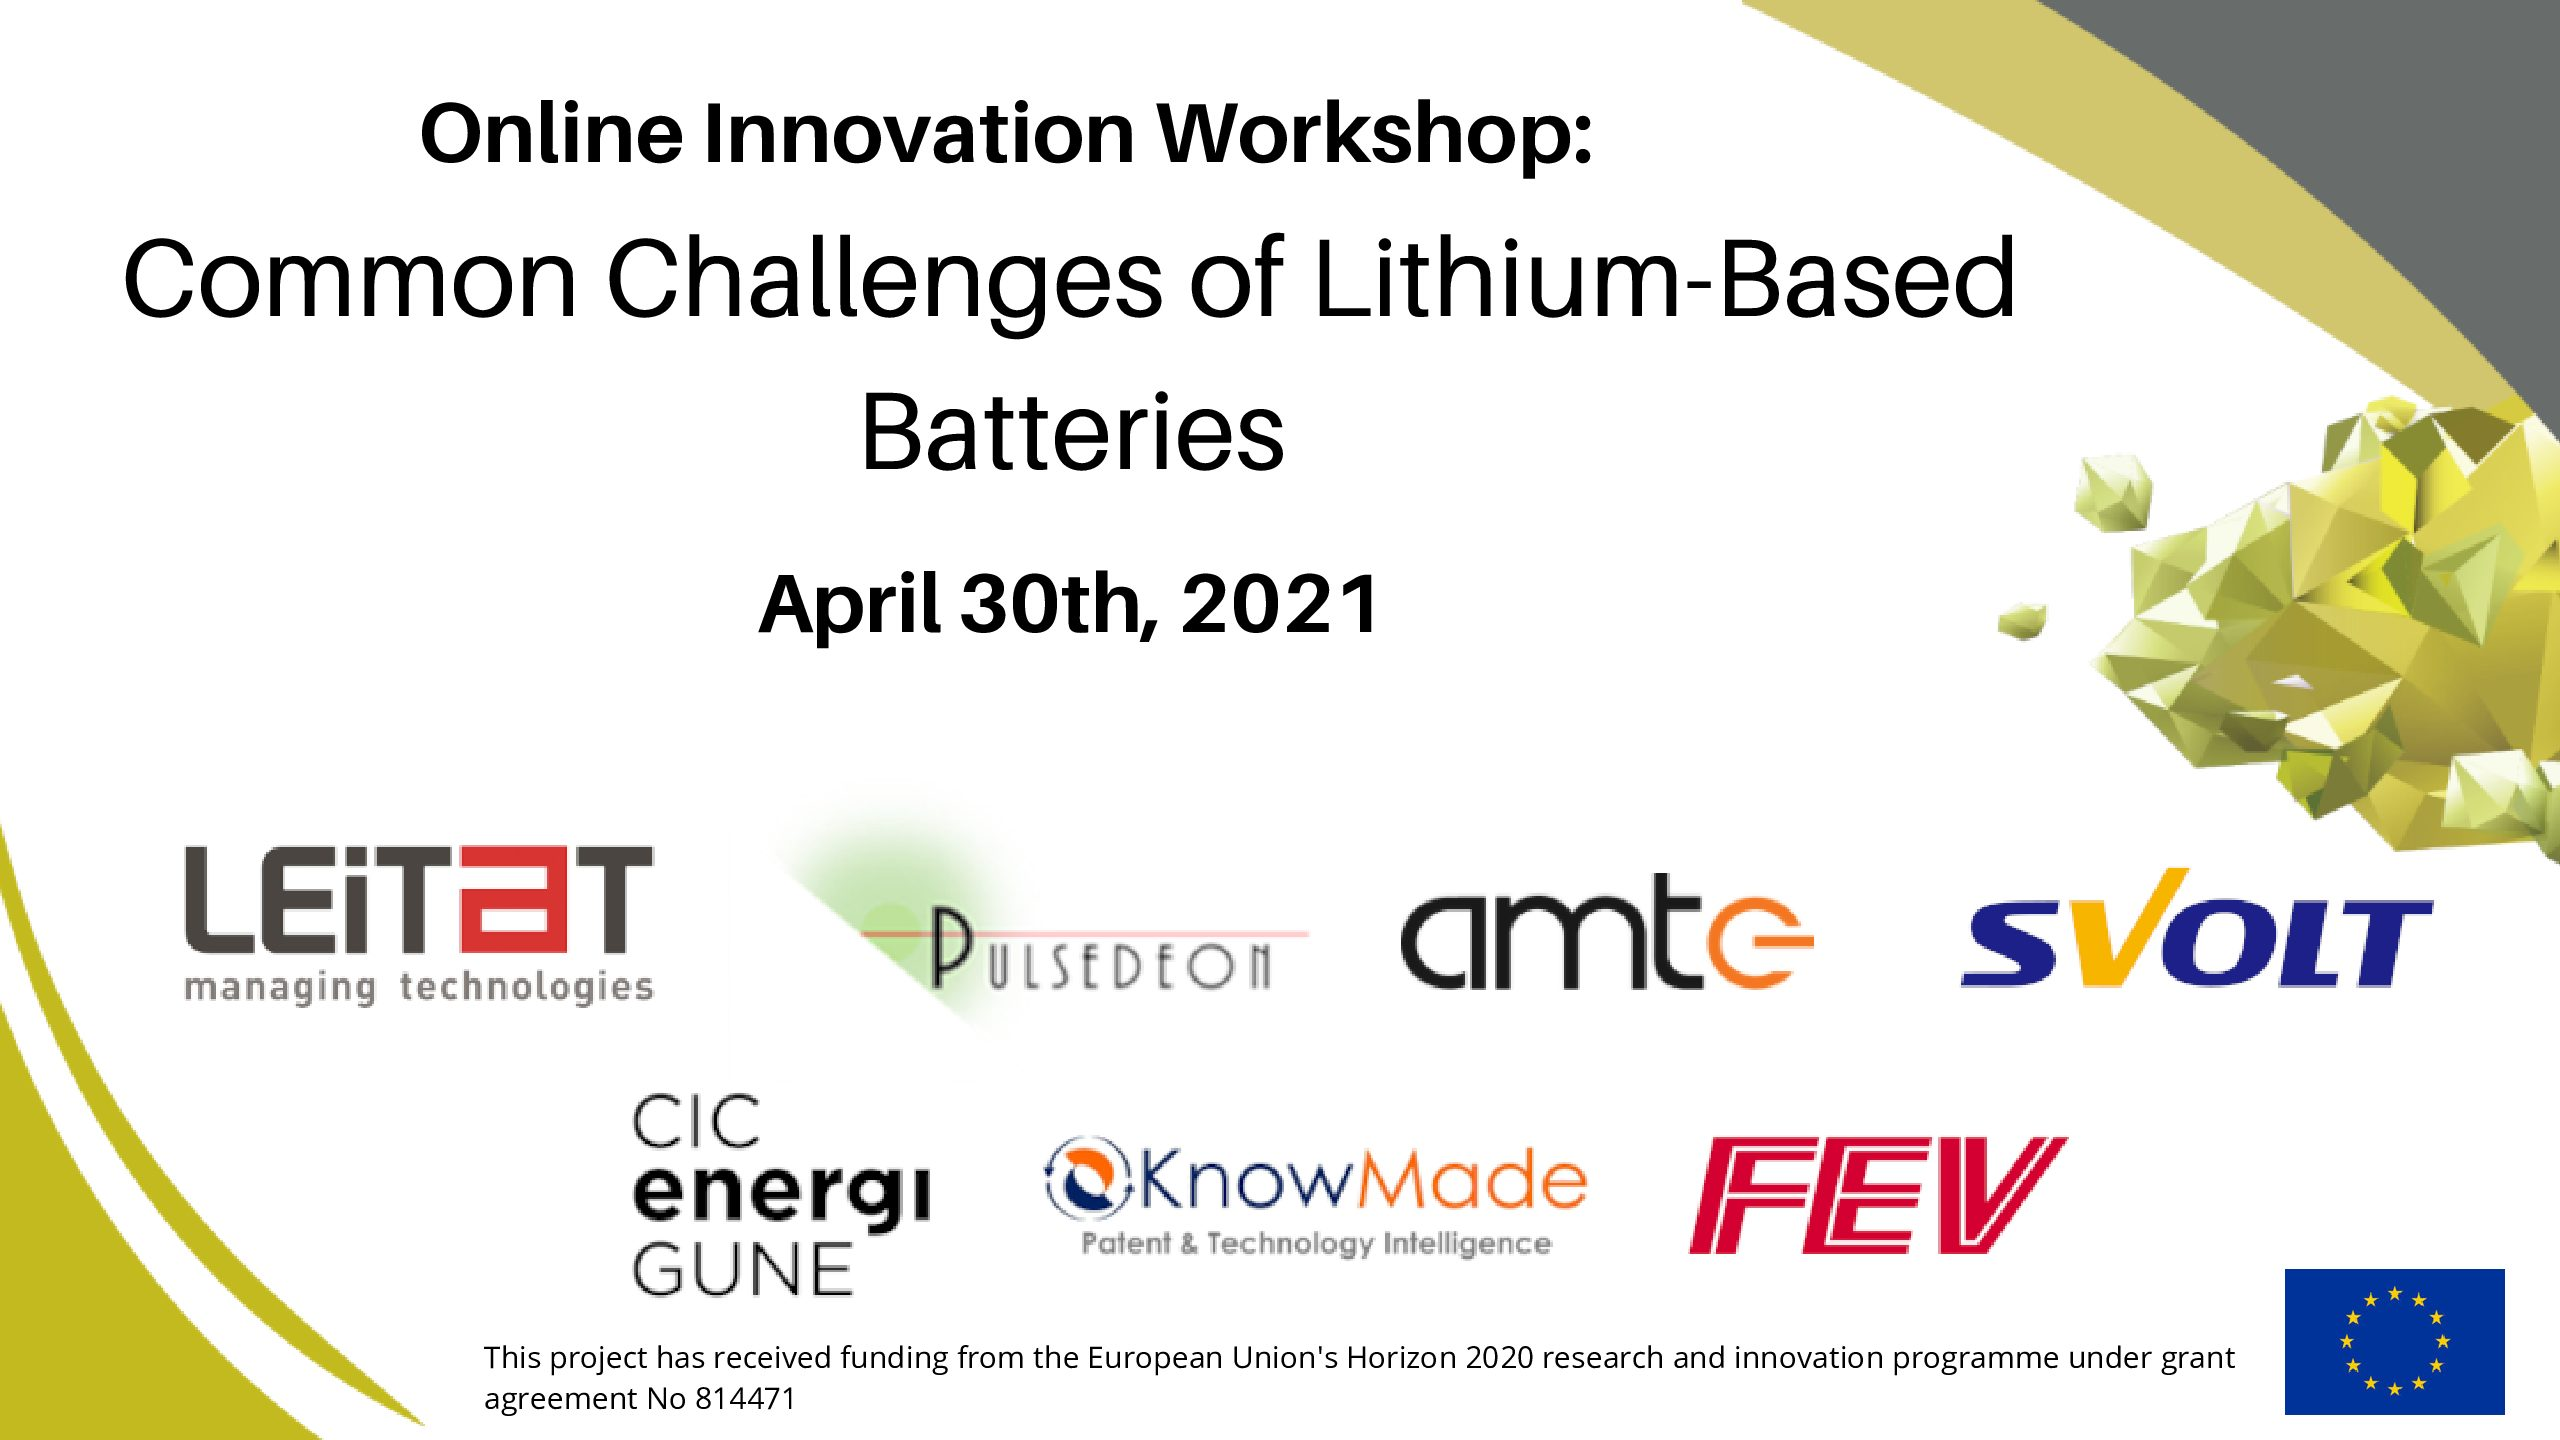 ONLINE INNOVATION WORKSHOP: COMMON CHALLENGES OF LITHIUM-BASED BATTERIES